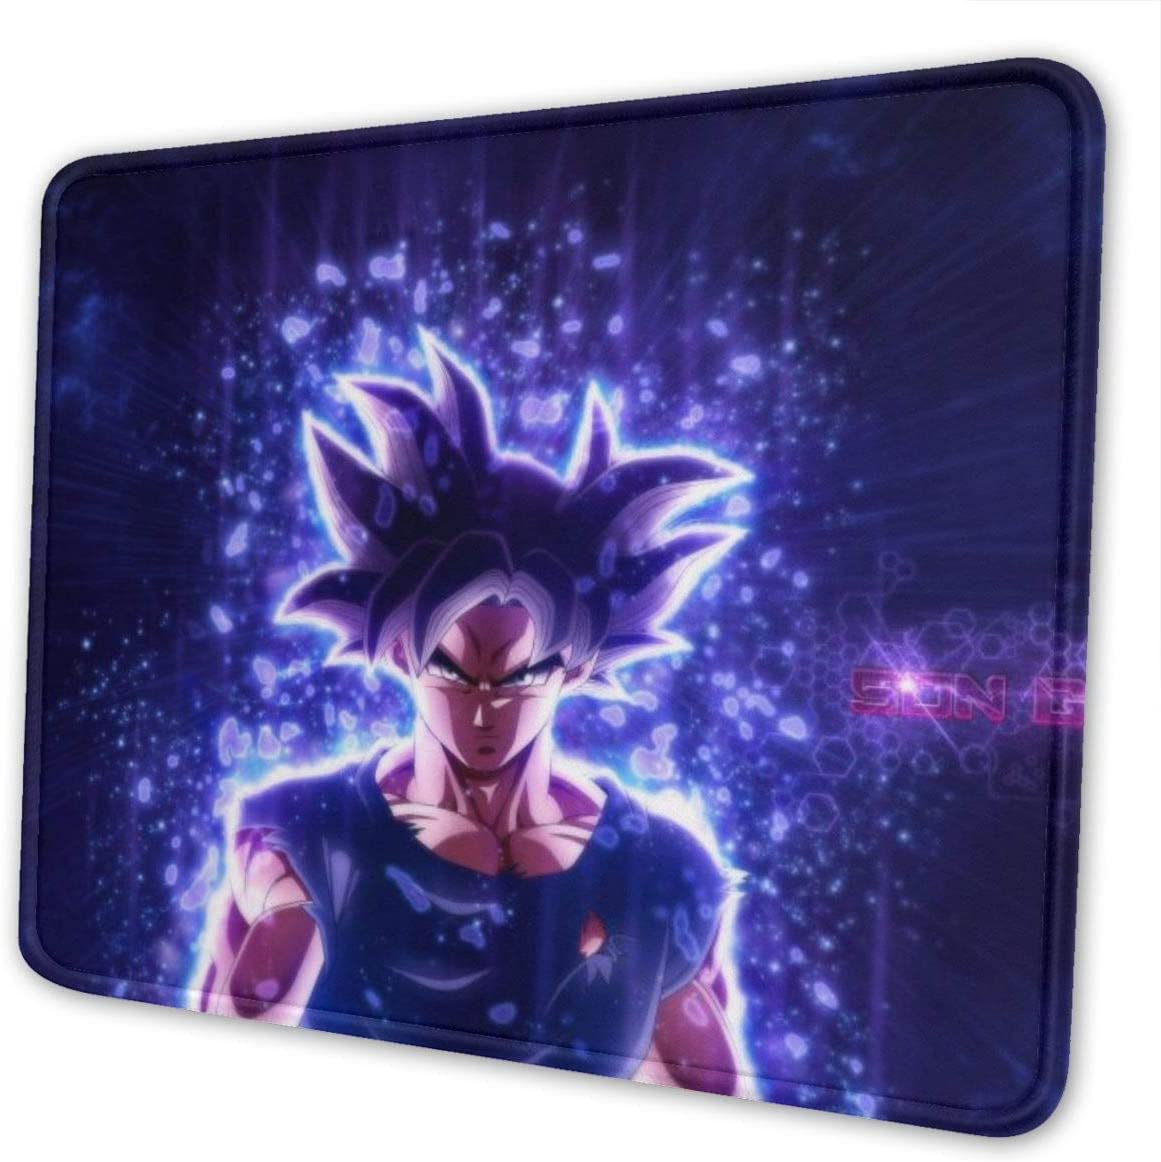 Anime Dragon Ball Son Guku Gaming Mouse Mat Pad Custom Professional Mousepad, Stitched Edges, Ideal for Desk Cover, Computer Keyboard, PC and Laptop (11.81 X 9.84 X 0.18inches)